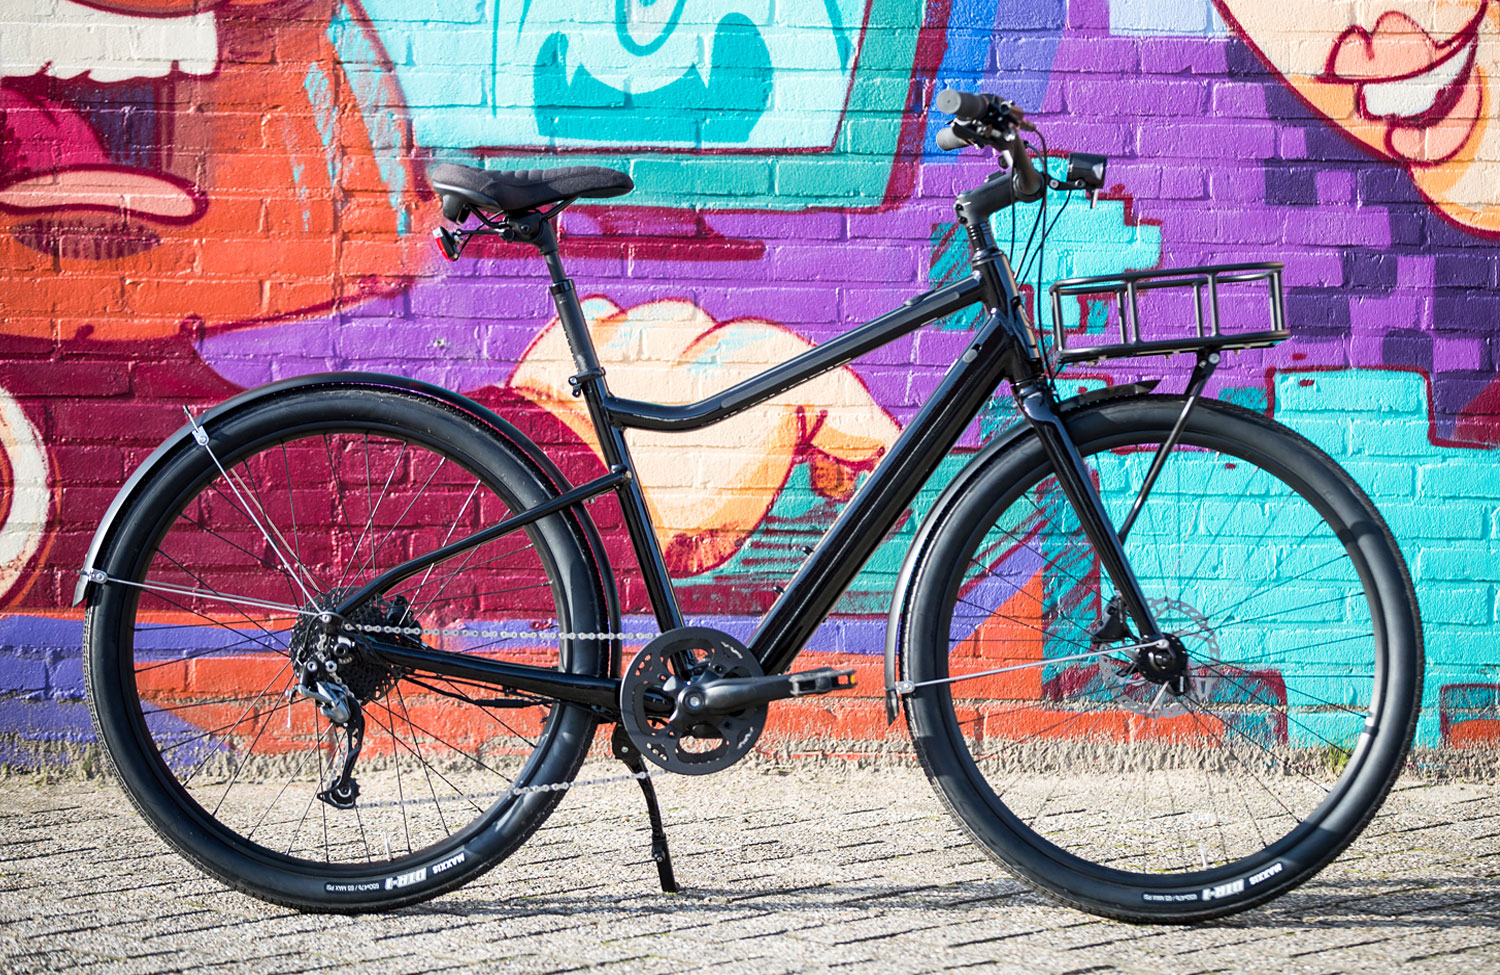 Convincingly unconventional: The Cannondale Treadwell Neo EQ ebike tested